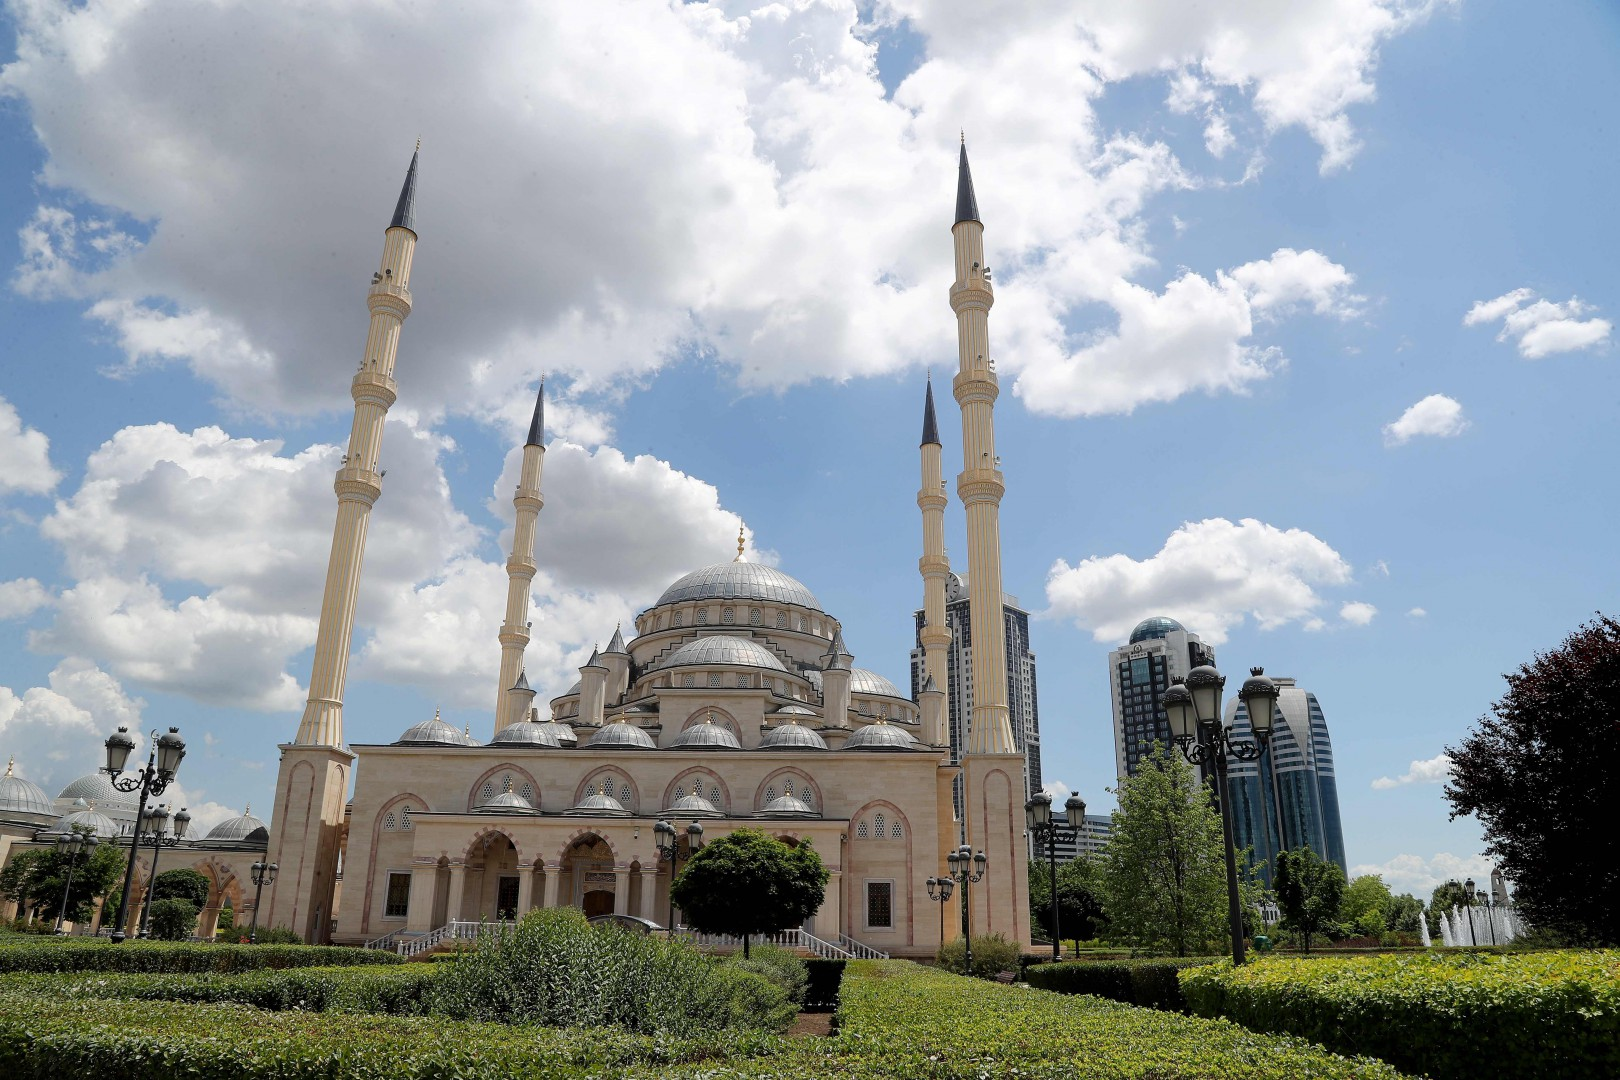 A view of the Heart of Chechnya - Akhmad Kadyrov Mosque, in Grozny on June 9, 2018, ahead of the Russia 2018 World Cup. / AFP PHOTO / KARIM JAAFAR